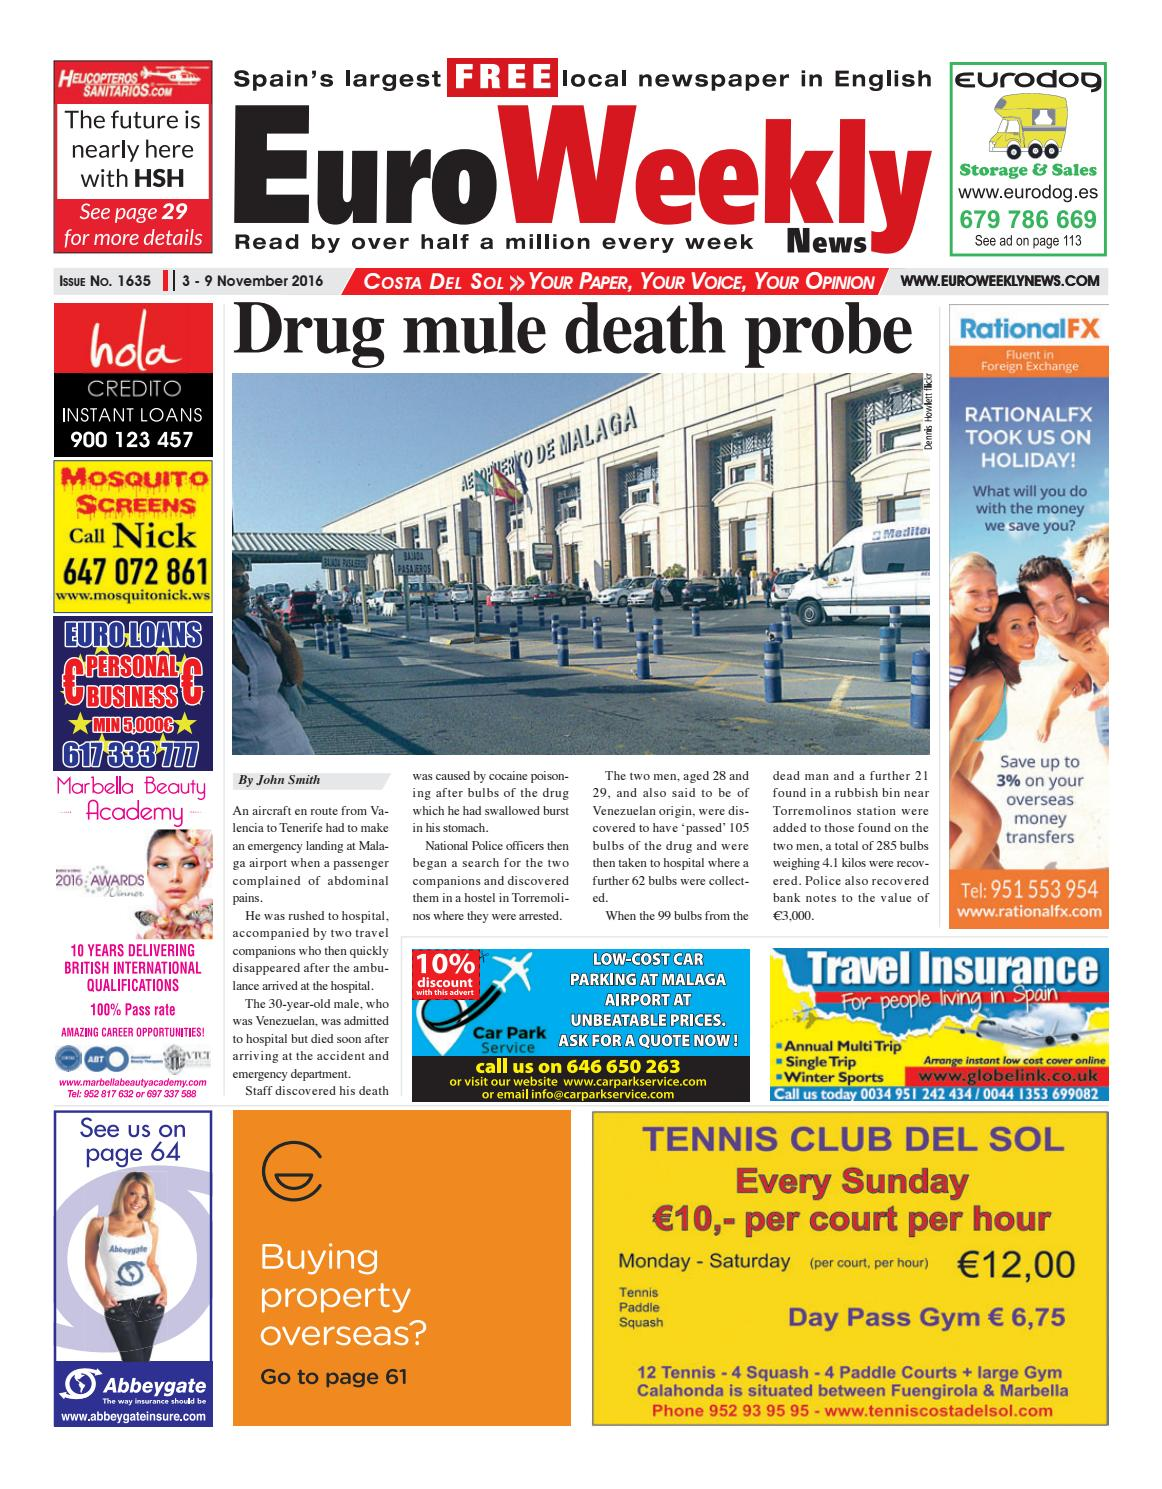 Euro Weekly News - Costa del Sol 3 - 9 November 2016 Issue 1635 by Euro  Weekly News Media S.A. - issuu 05117a617